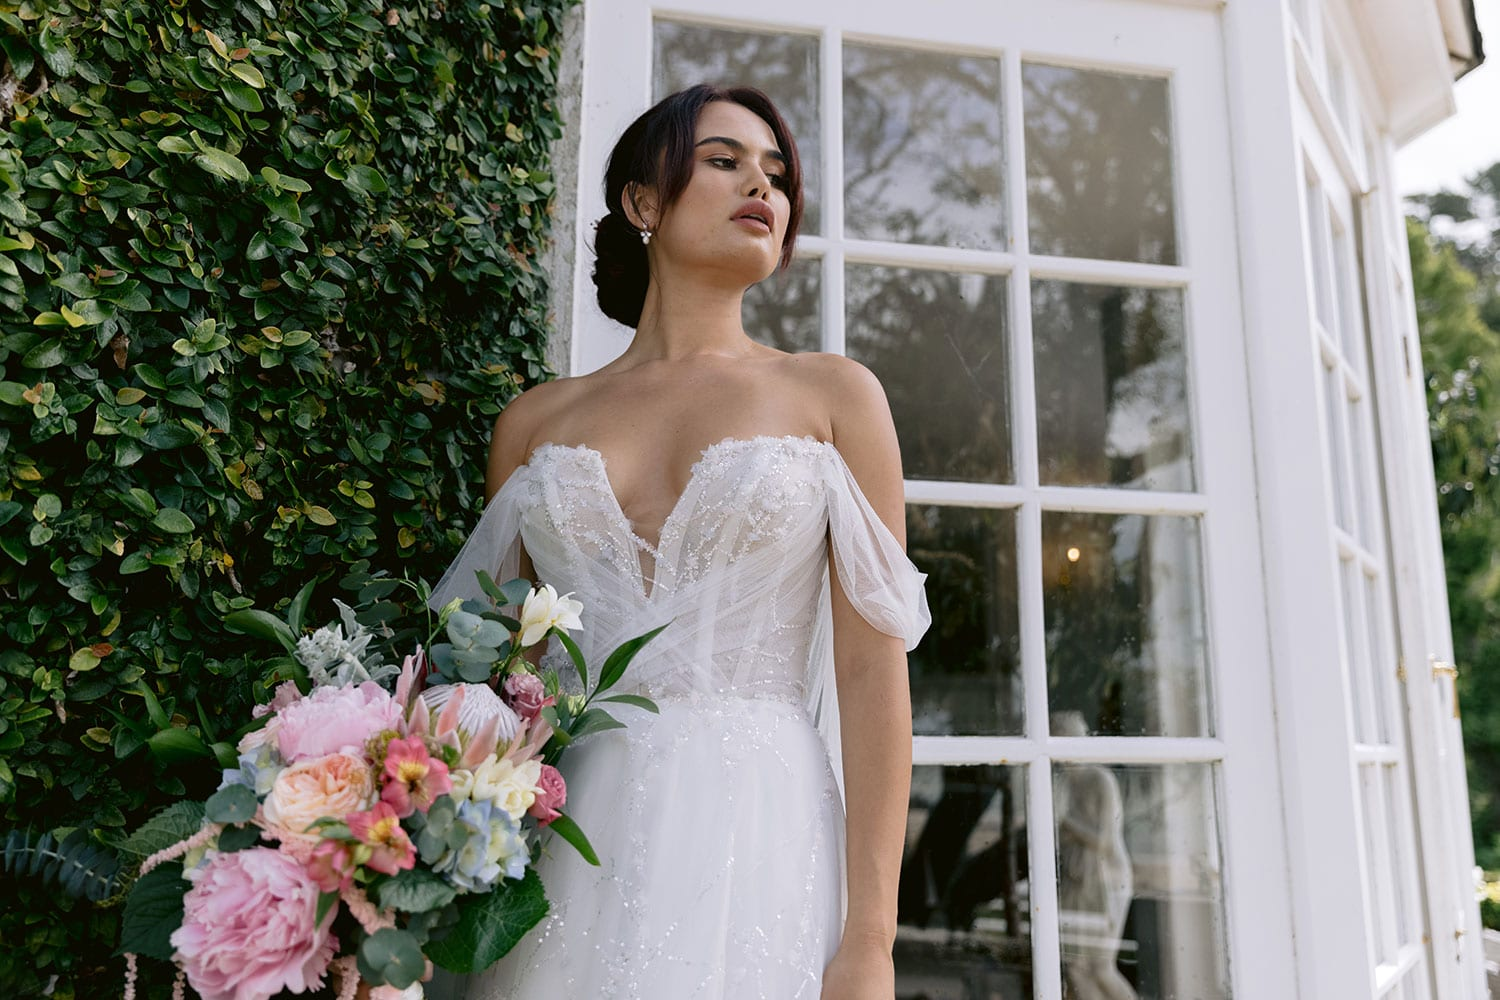 Evie Wedding gown from Vinka Design - Dreamy semi-sheer wedding dress with lace embroidery and beading. The bodice is structured, with hand-appliqued lace and draped with tulle to integrate modern elements with classic design. Model wearing gown showing front panel detail.